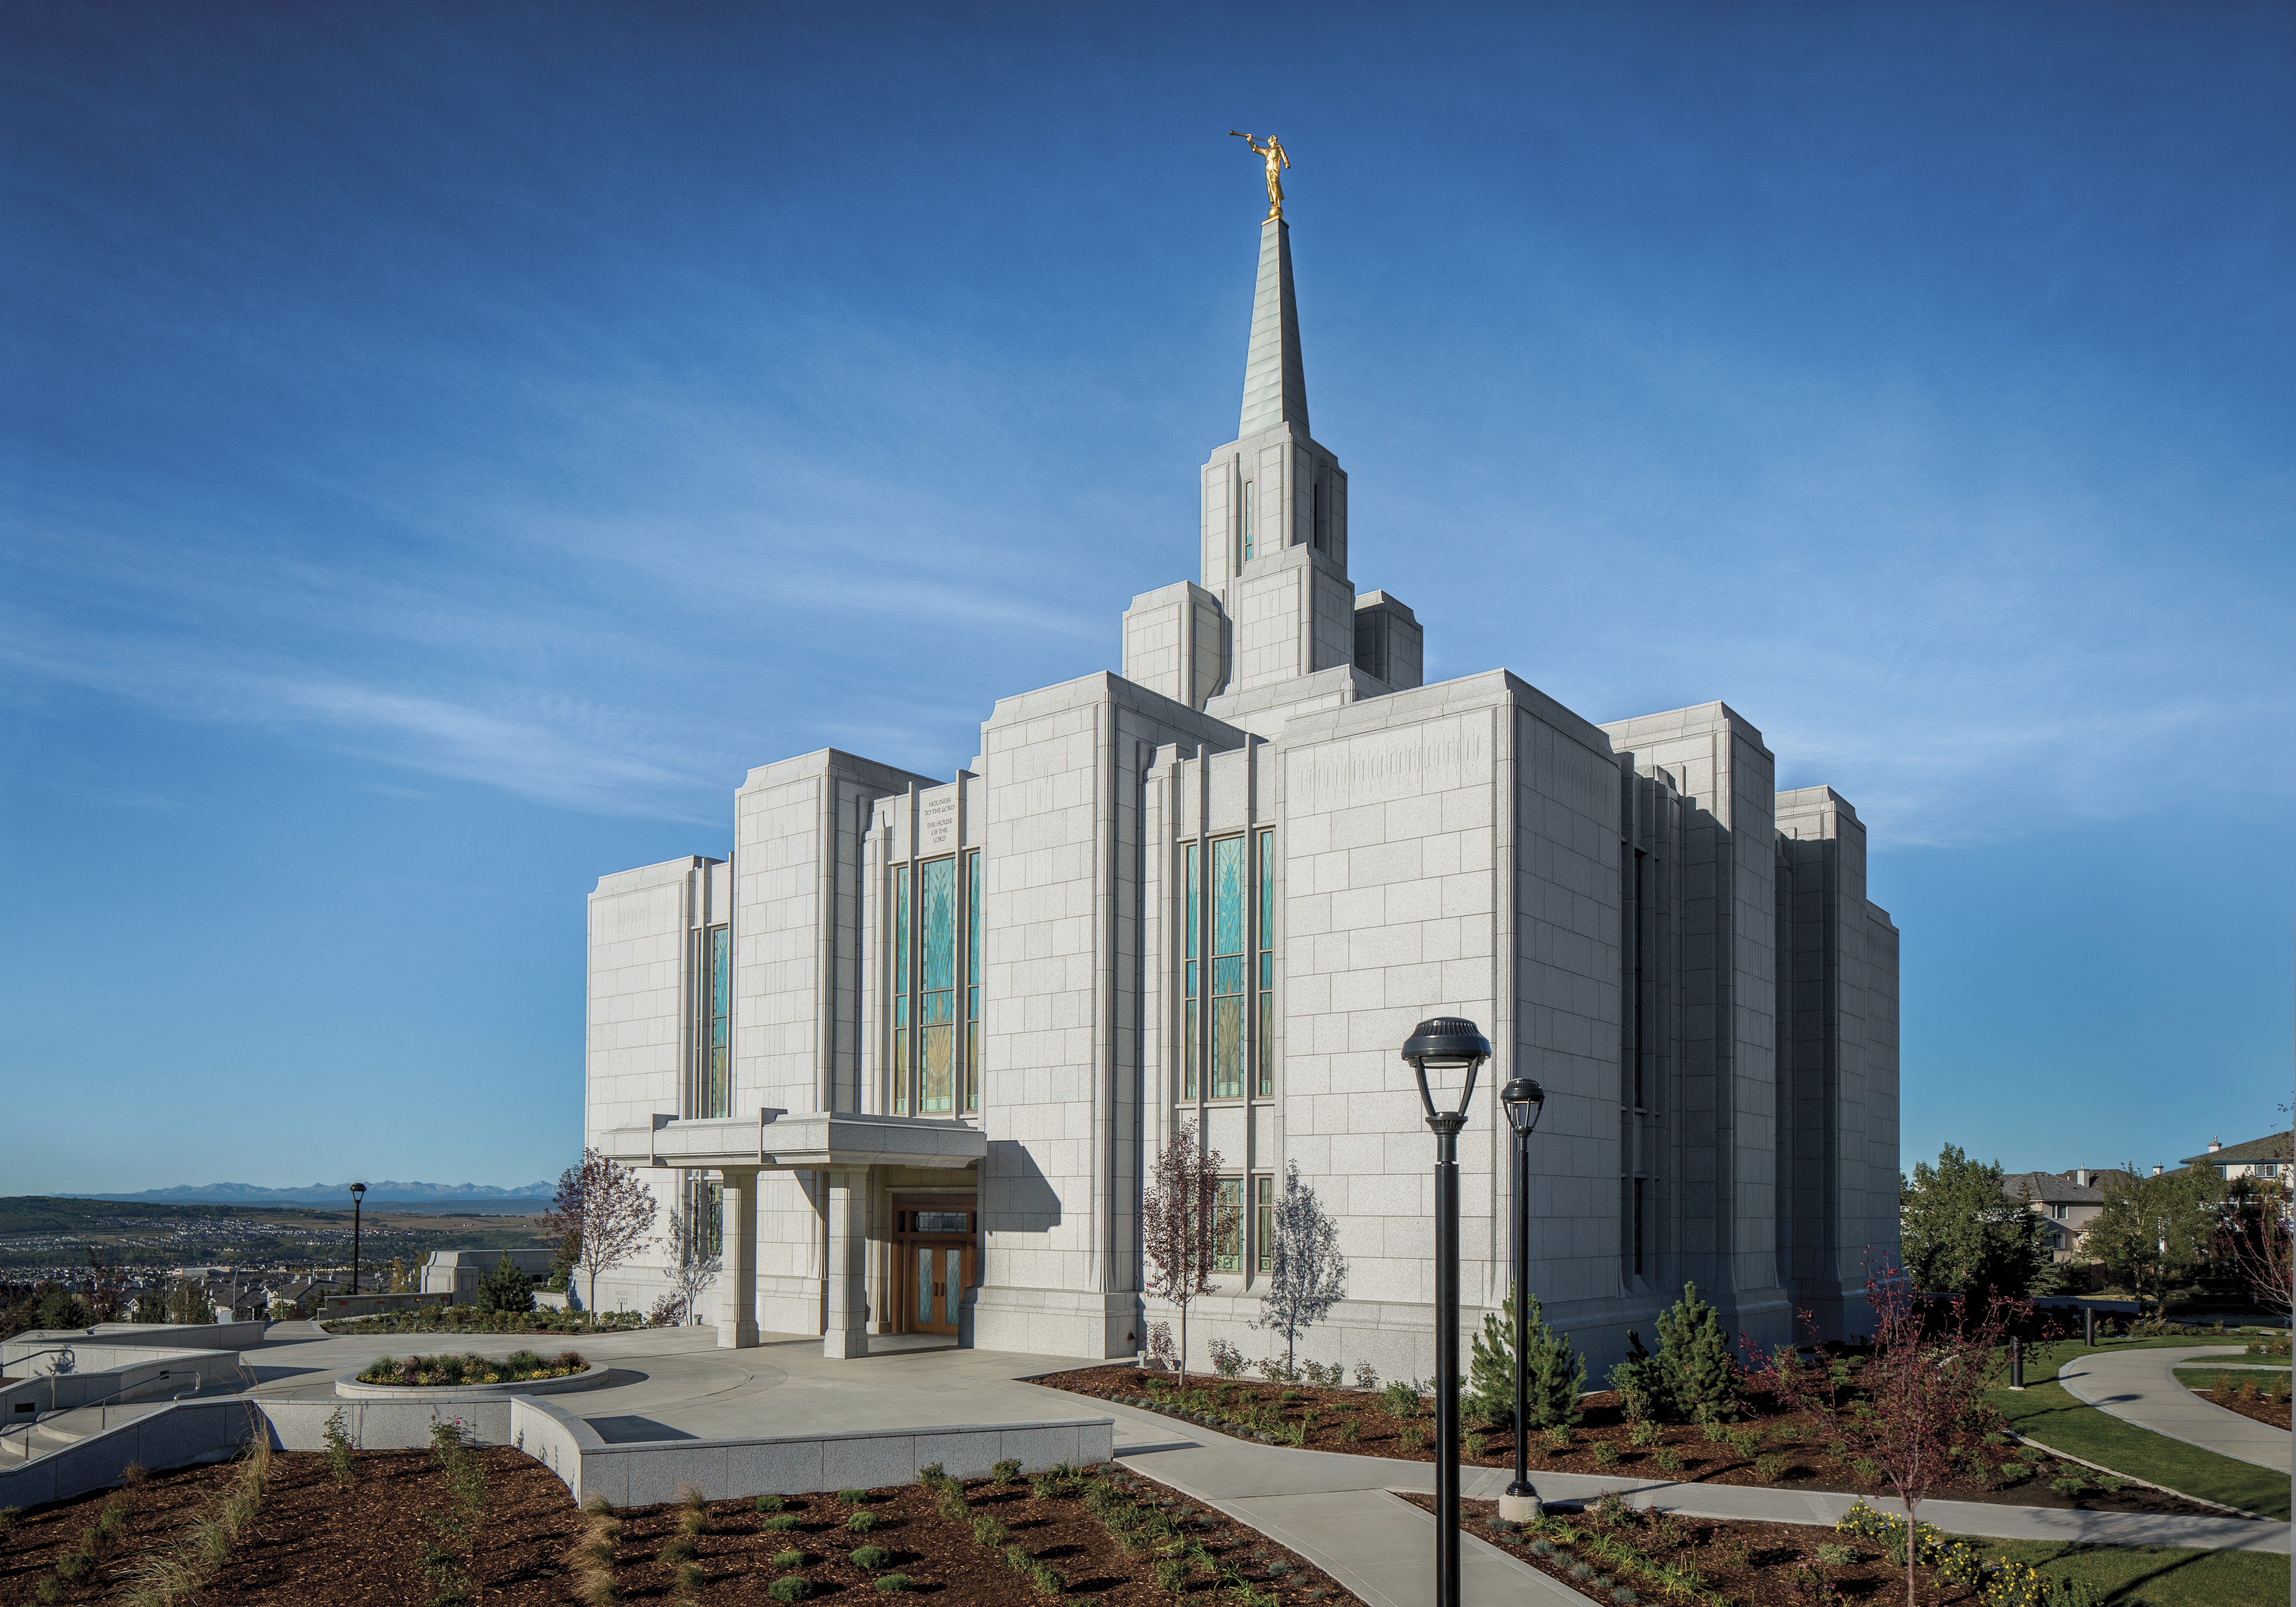 An exterior view of the Calgary Alberta Temple.